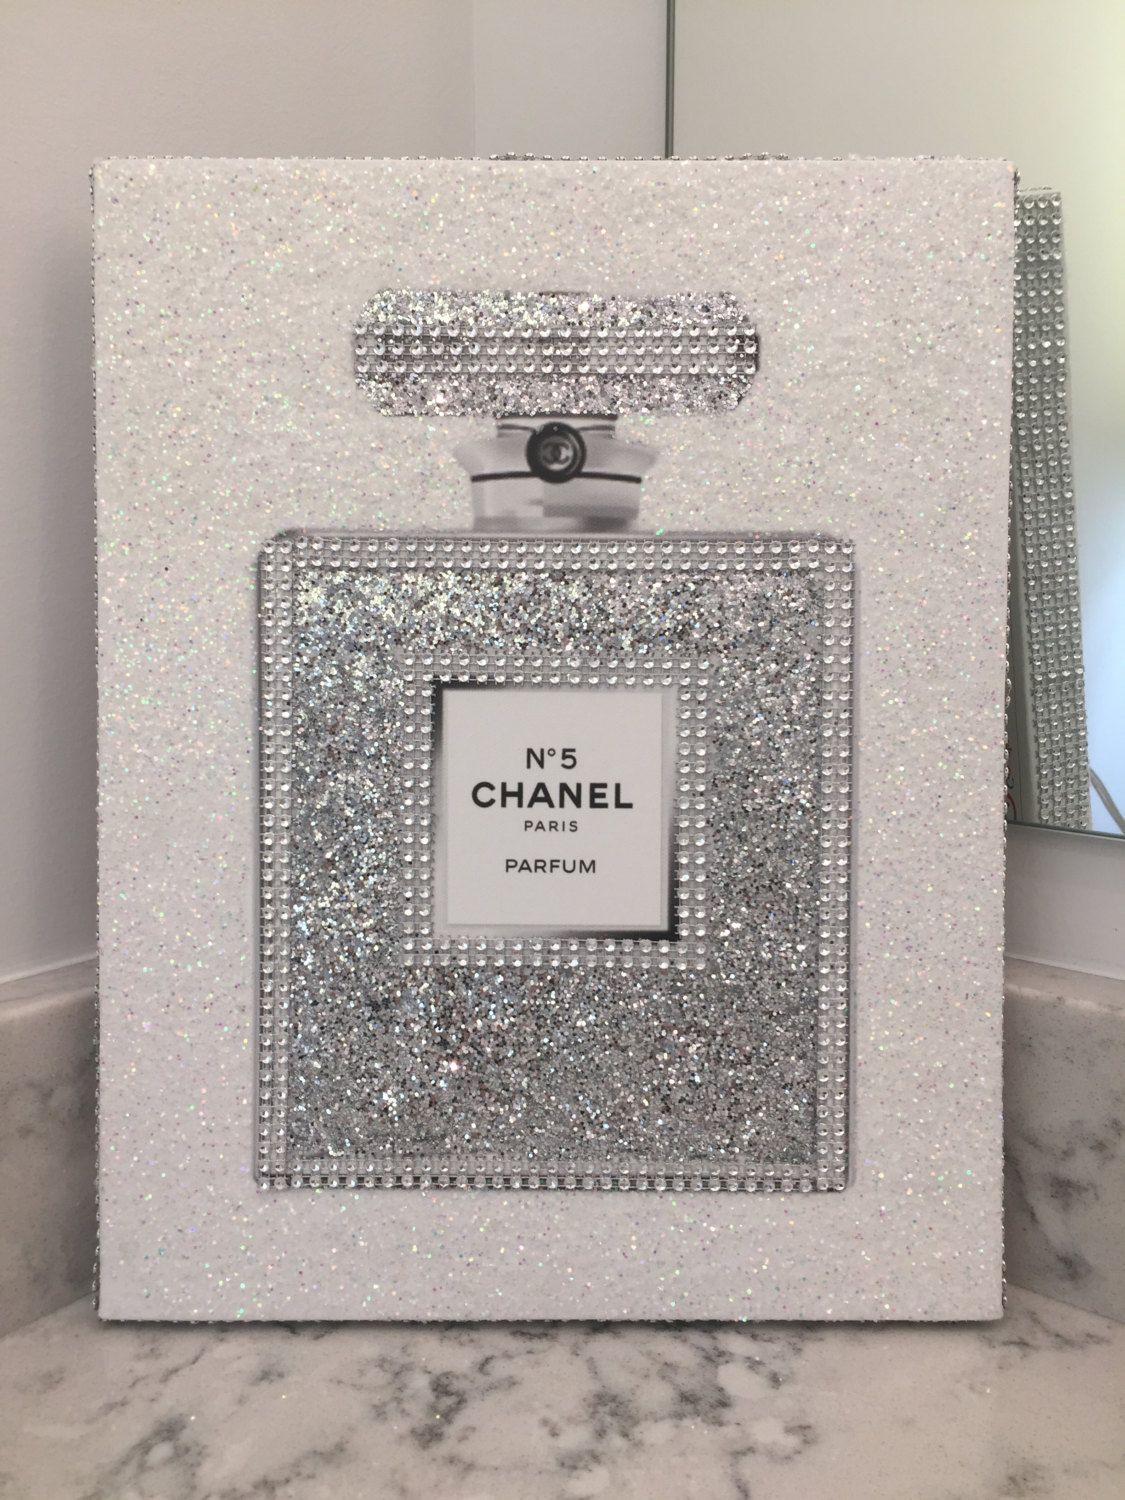 Last One Left Canvas Wrapped Embellished Art Print Chanel No 5